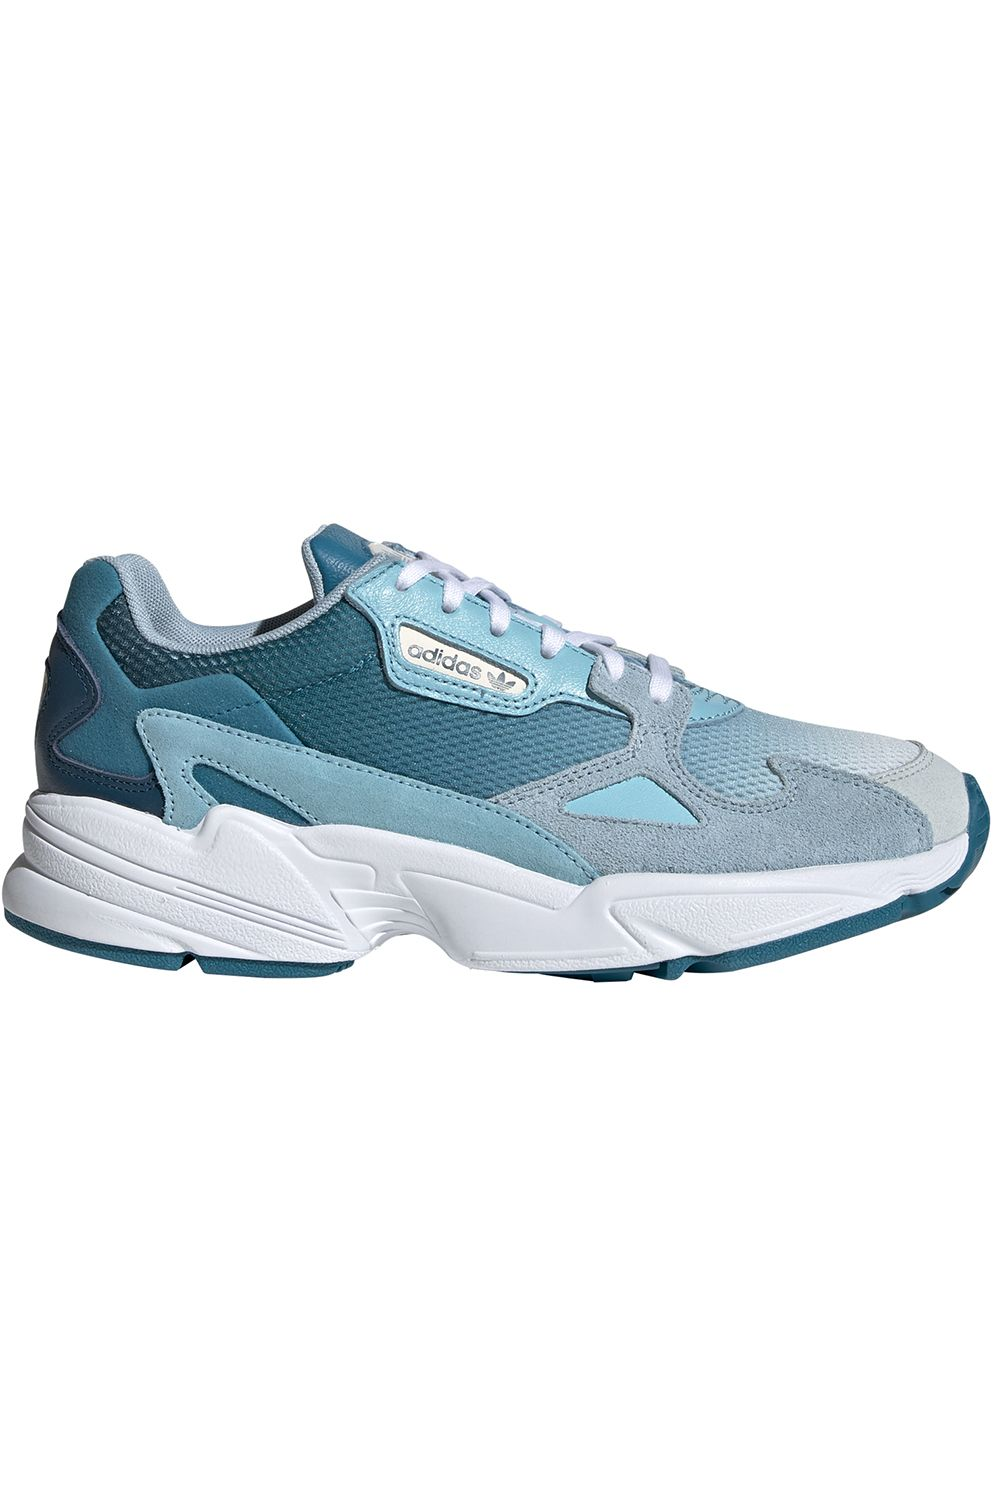 Tenis Adidas FALCON Blue Tint S18/Light Aqua/Ash Grey S18